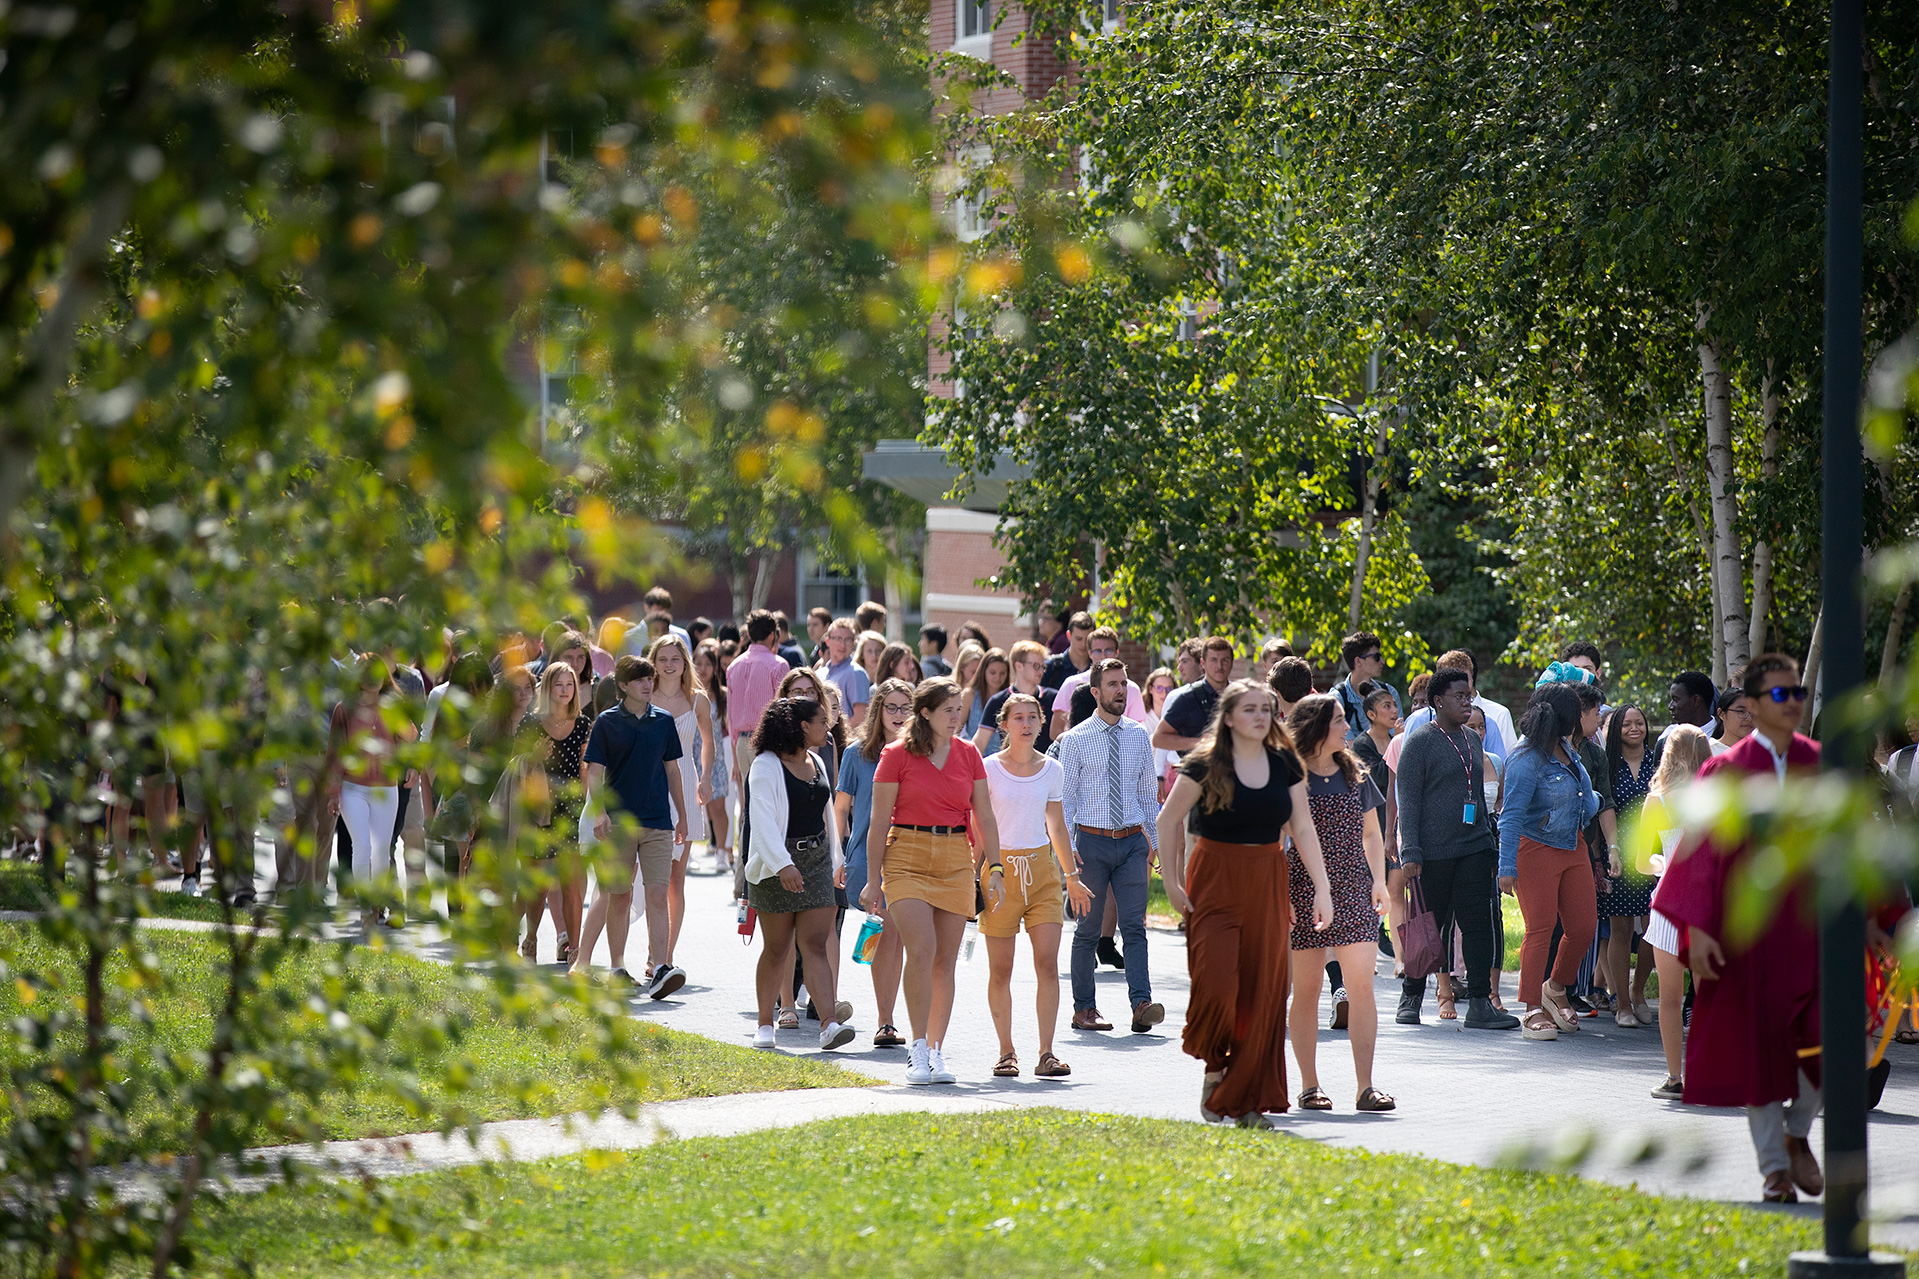 Shortly before the start of Opening Convocation, members of the Class of 2013 find their places on Alumni Walk for the ceremonial procession. (Phyllis Graber Jensen/Bates College)